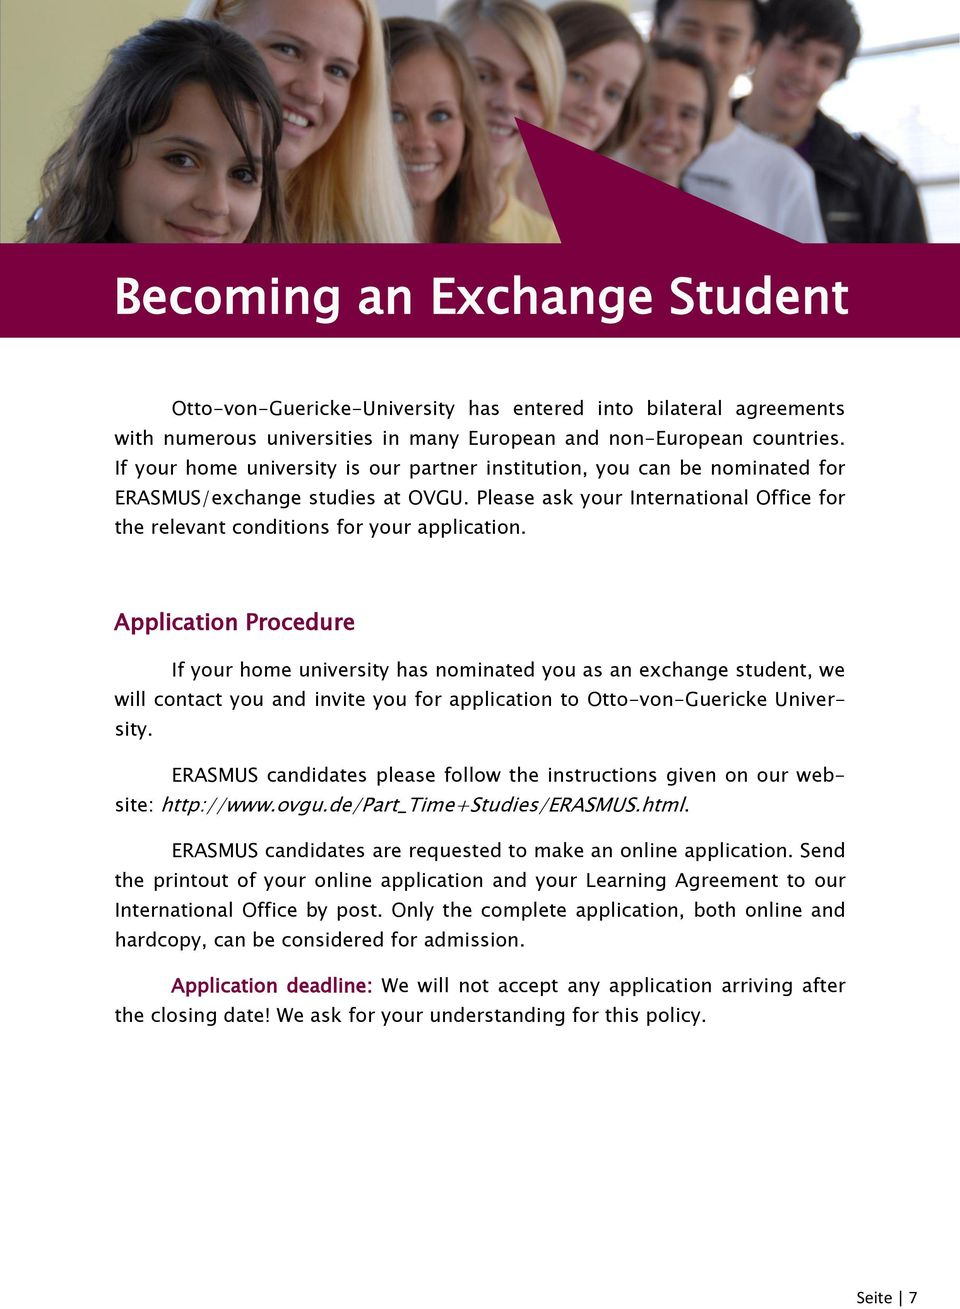 Application Procedure If your home university has nominated you as an exchange student, we will contact you and invite you for application to Otto-von-Guericke University.